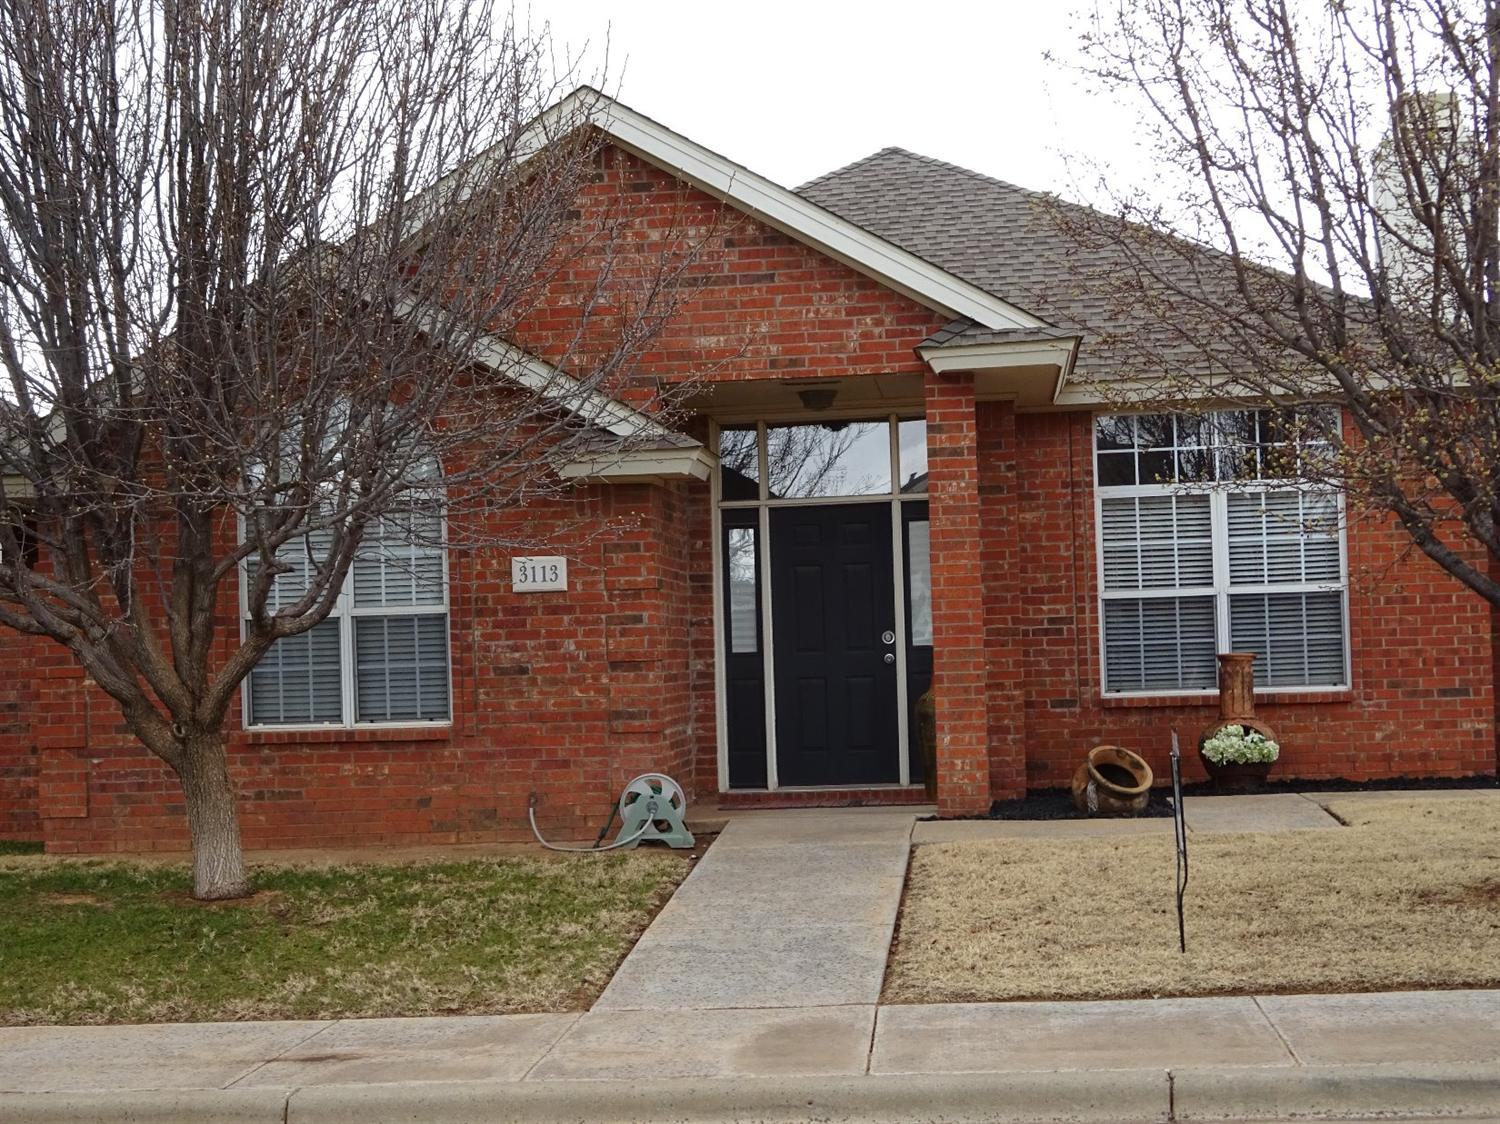 primary photo for 3113 101st Street, Lubbock, TX 79423, US